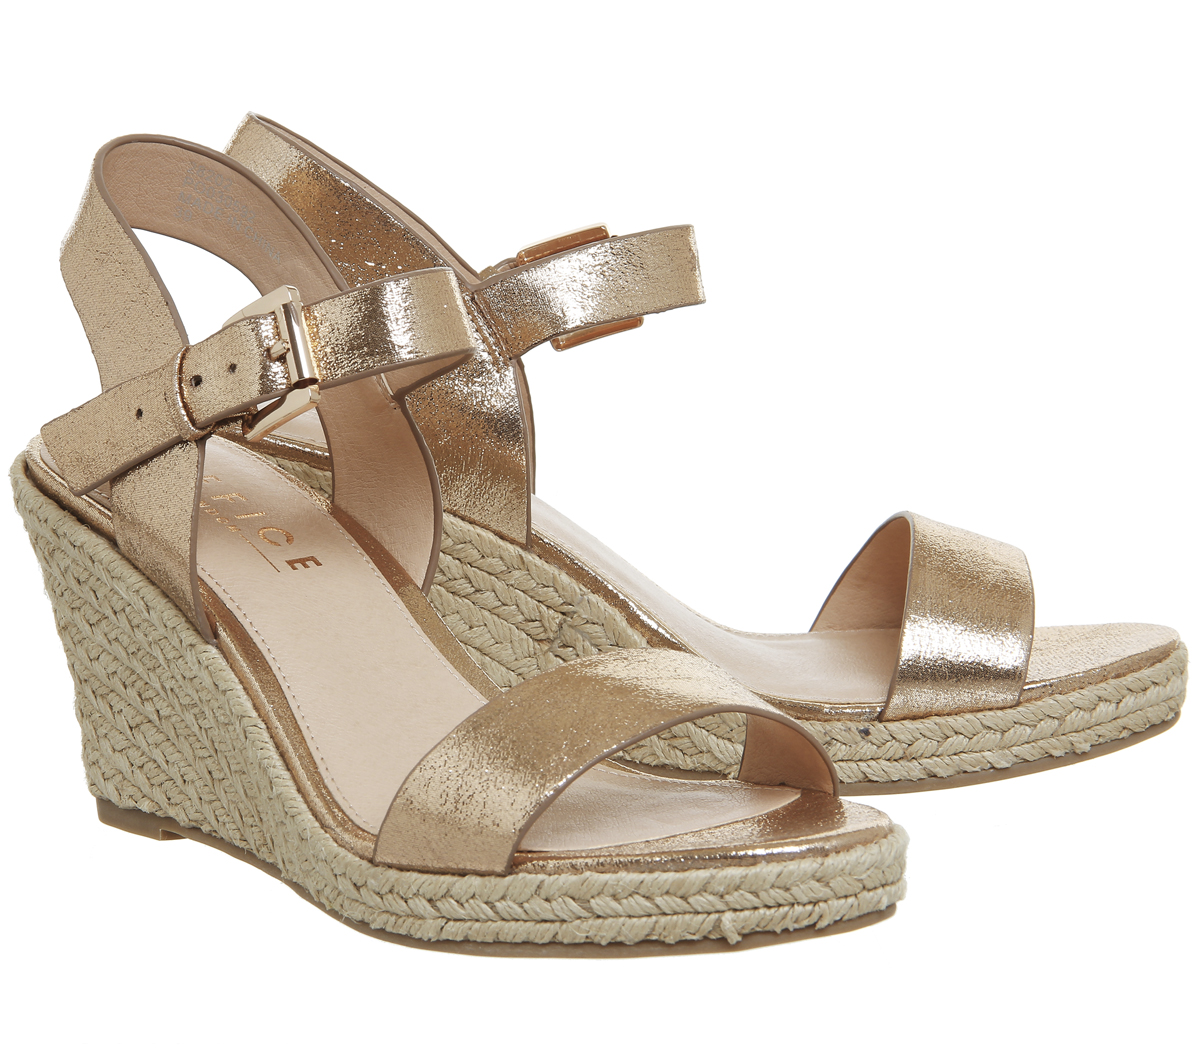 Largest Supplier Cheap Online Office Office Marbs Two Part Espadrille ROSE METALLIC Latest Collections Sale Online Sale 2018 Discount High Quality Buy Cheap With Paypal jphZD